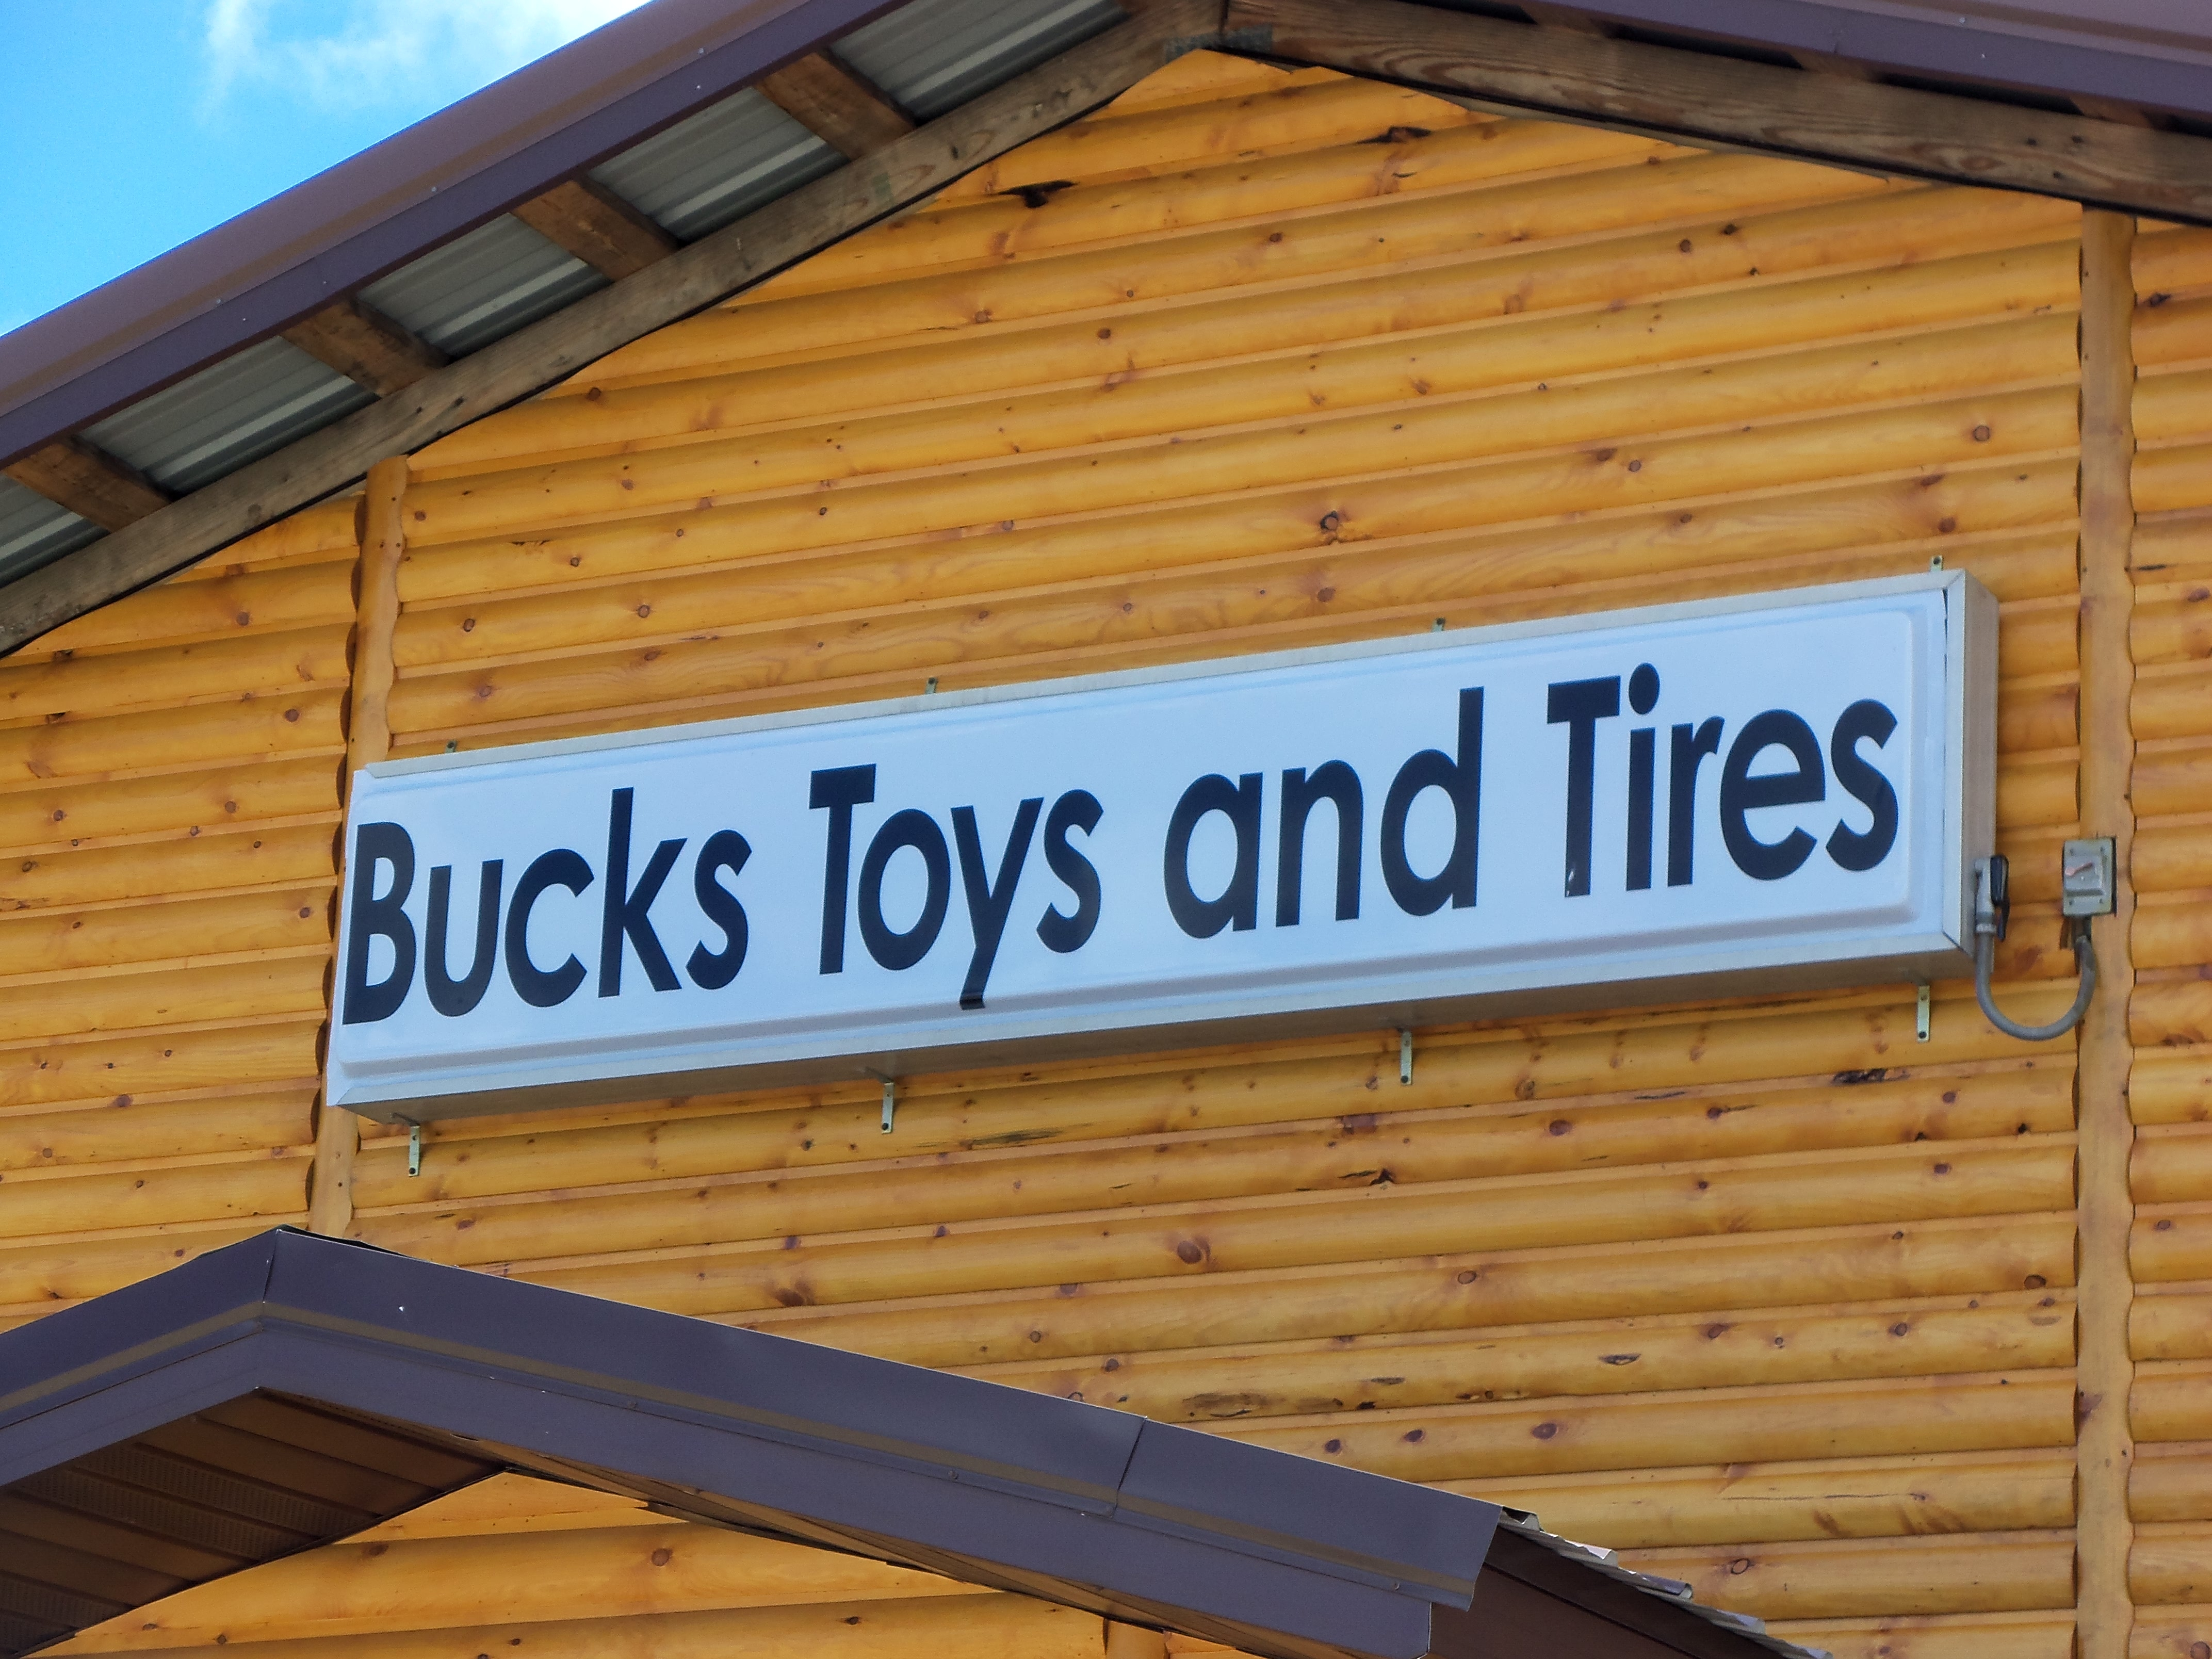 Log Sided Building - set back from Hwy 65. Bucks Toys and Tires